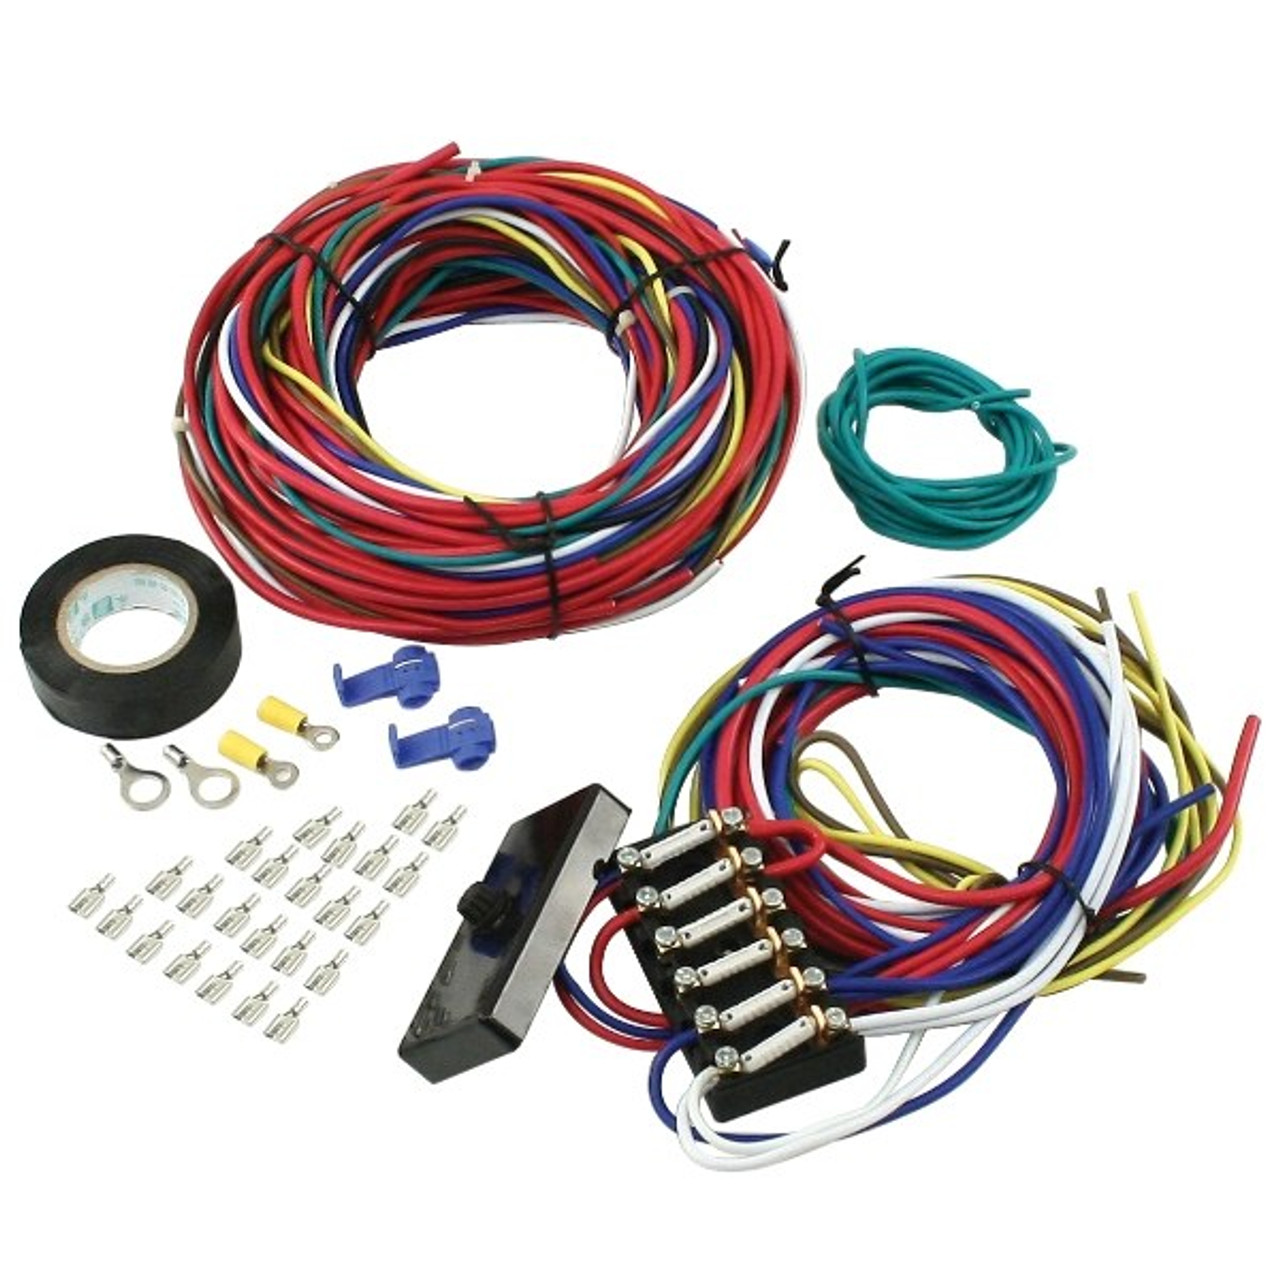 large-AC971000__14441.1421968365 Rail Buggy Wiring Harness on restraint for pram, for horse pull,